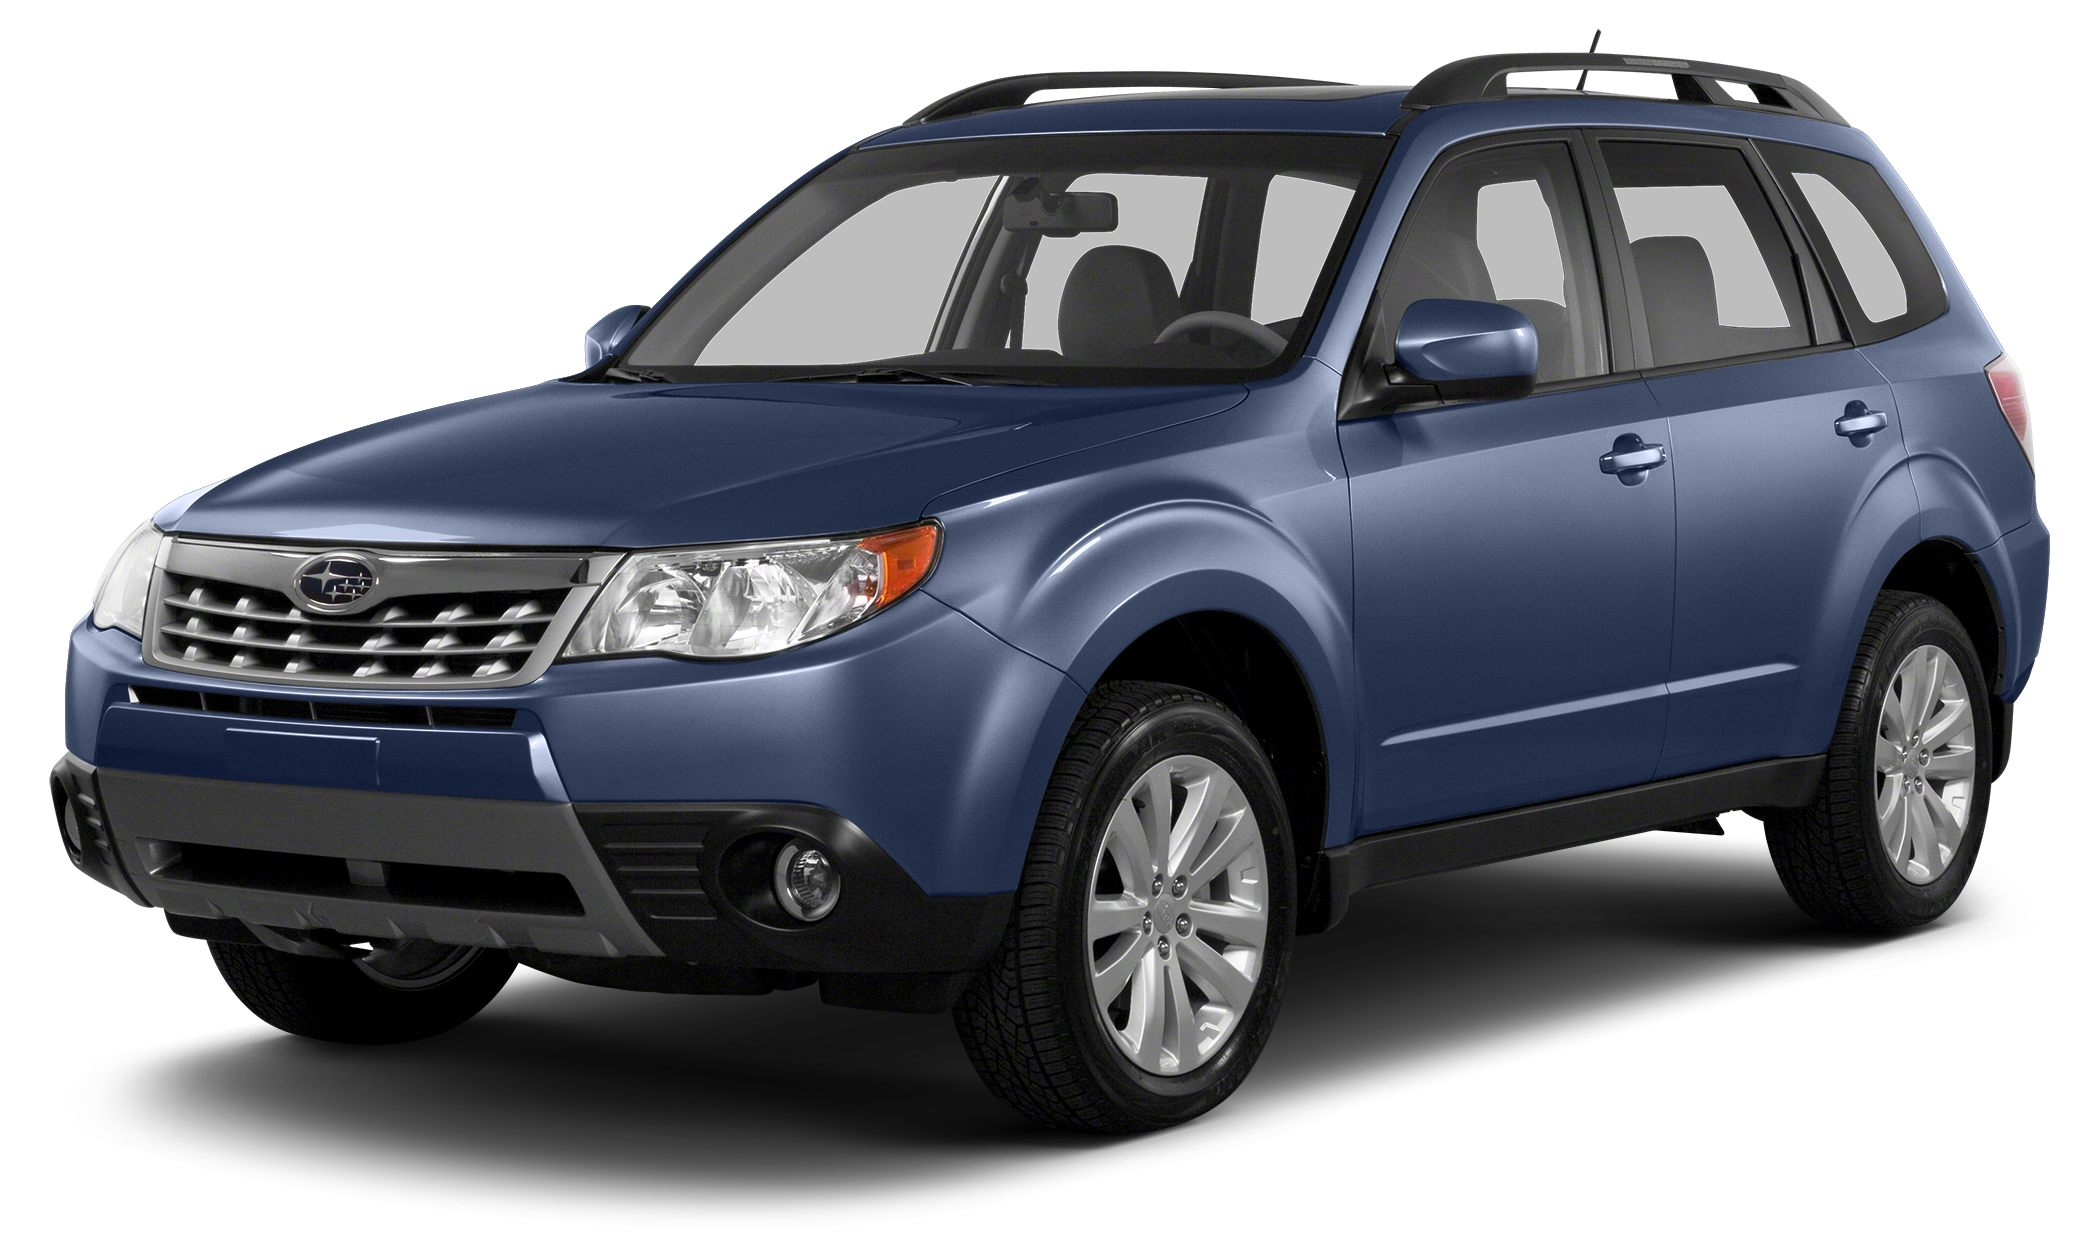 2013 Subaru Forester 25X Clean CARFAX  2013 Subaru Forester 25X EQUIPPED WITH 25L 4-Cylinder